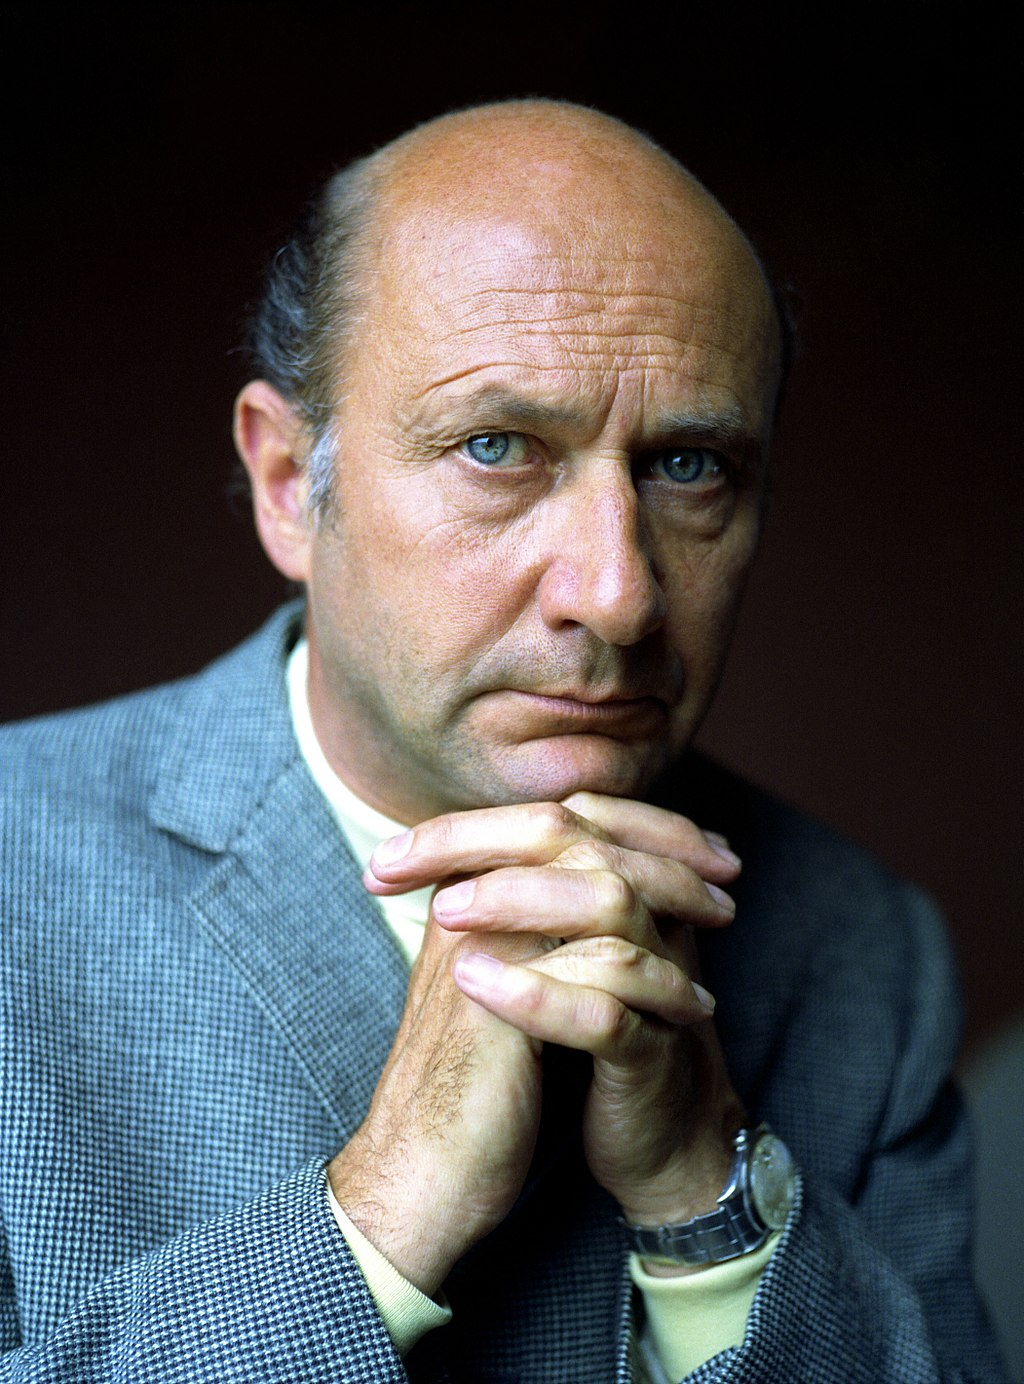 File:Donald-Pleasence.jpg